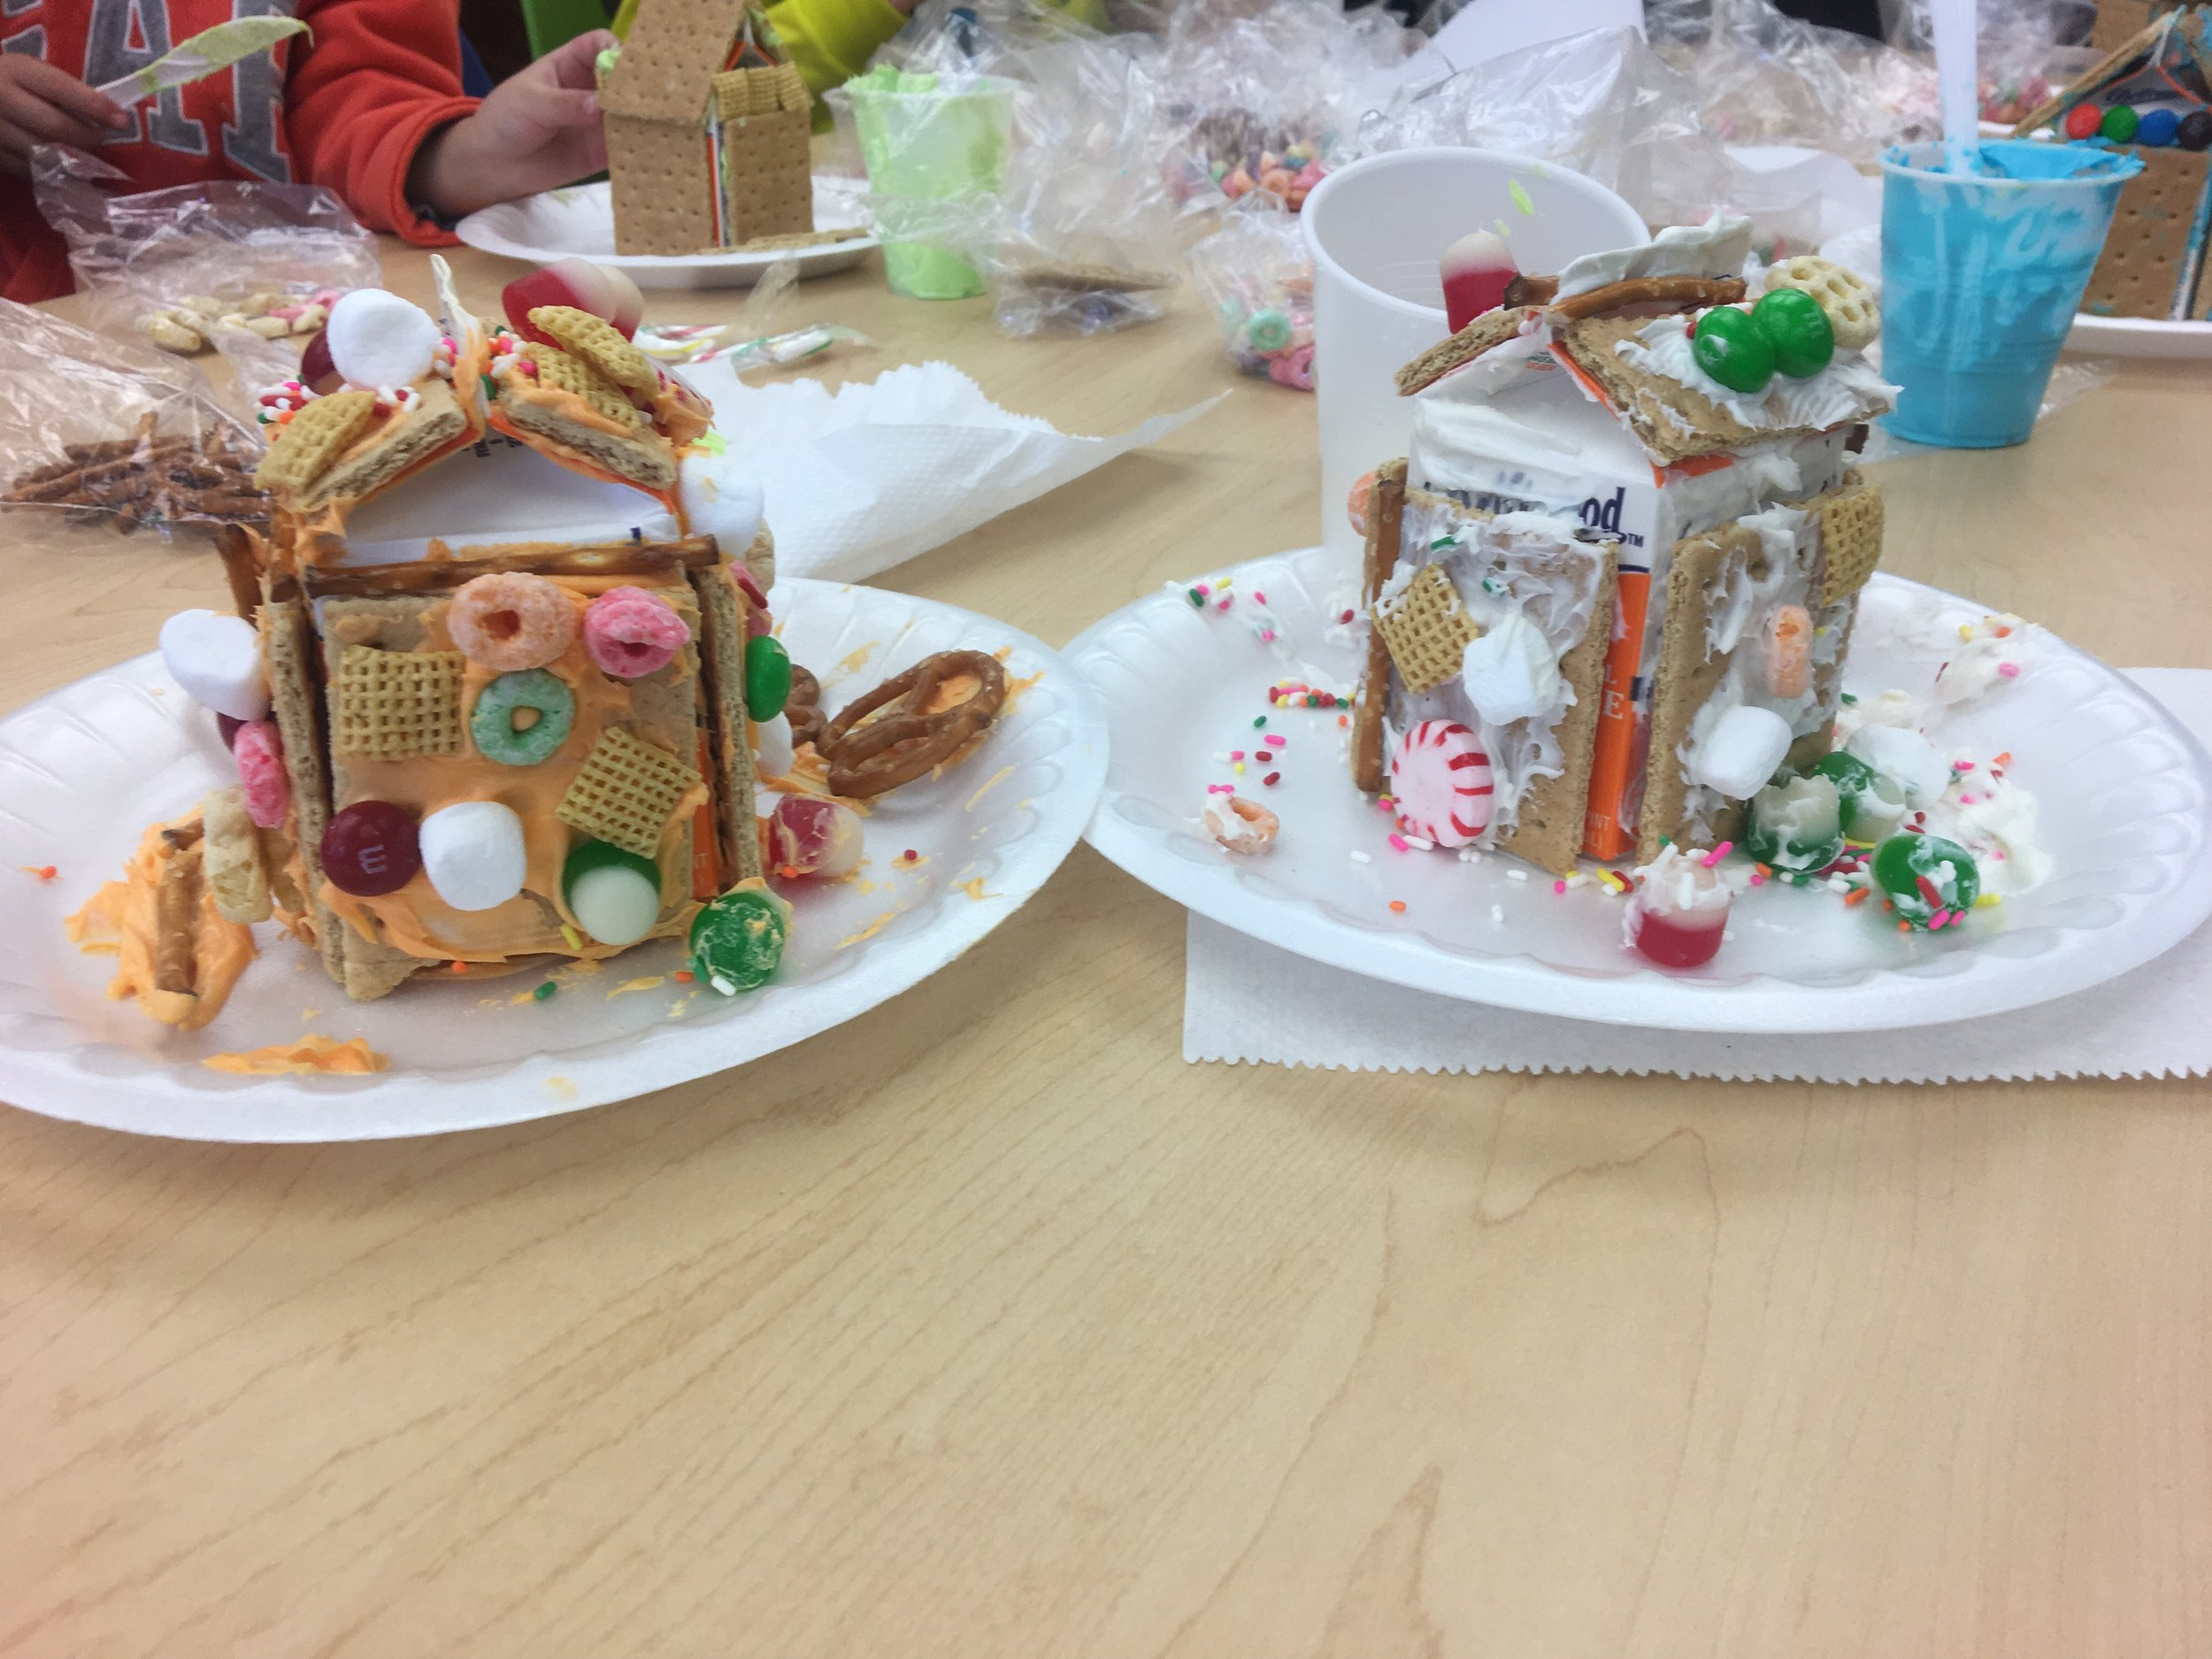 Sticky but fun gingerbread house-making!